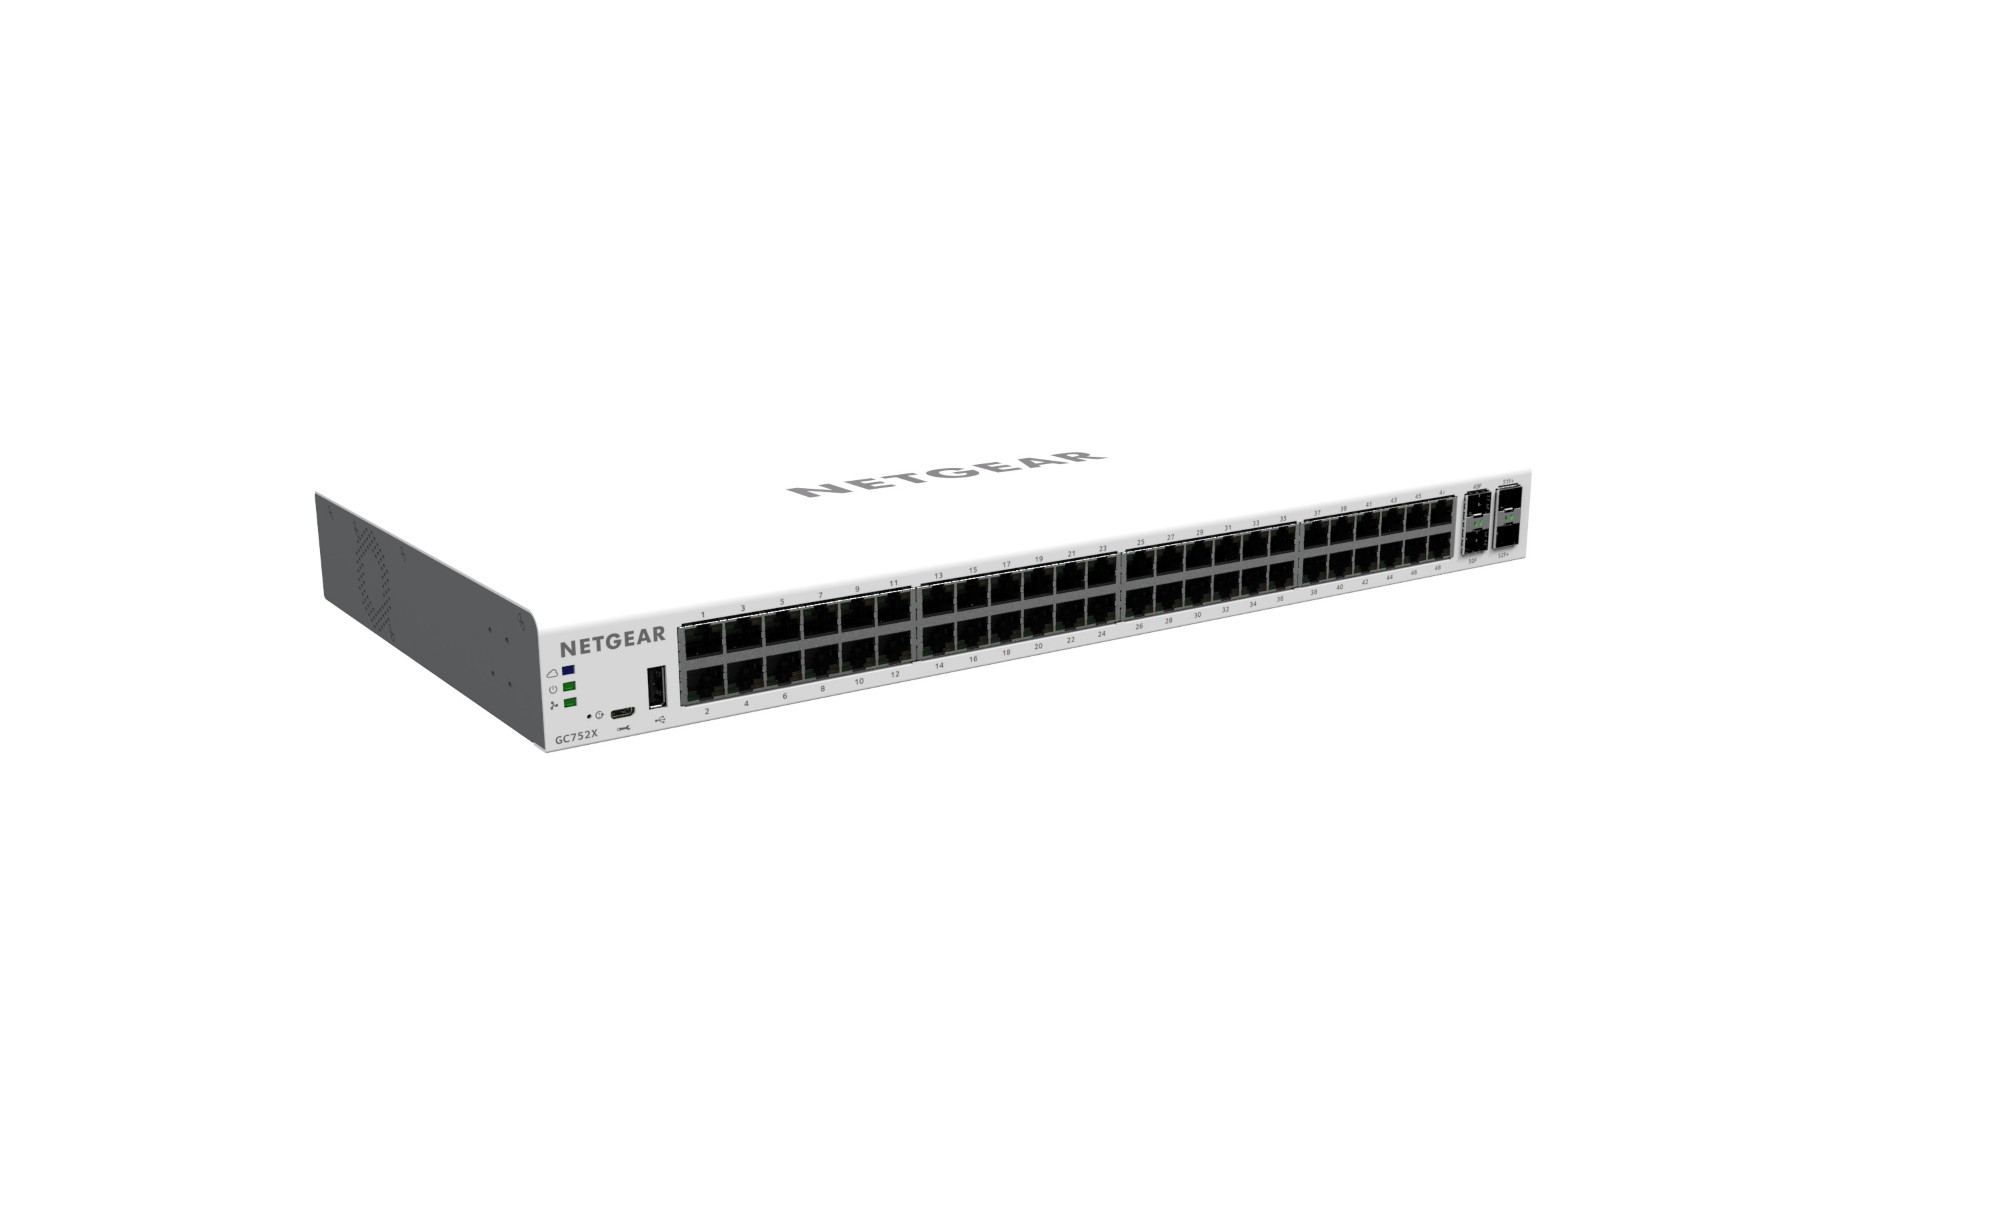 NETGEAR GC752X MANAGED L2/L3/L4 GIGABIT ETHERNET GREY